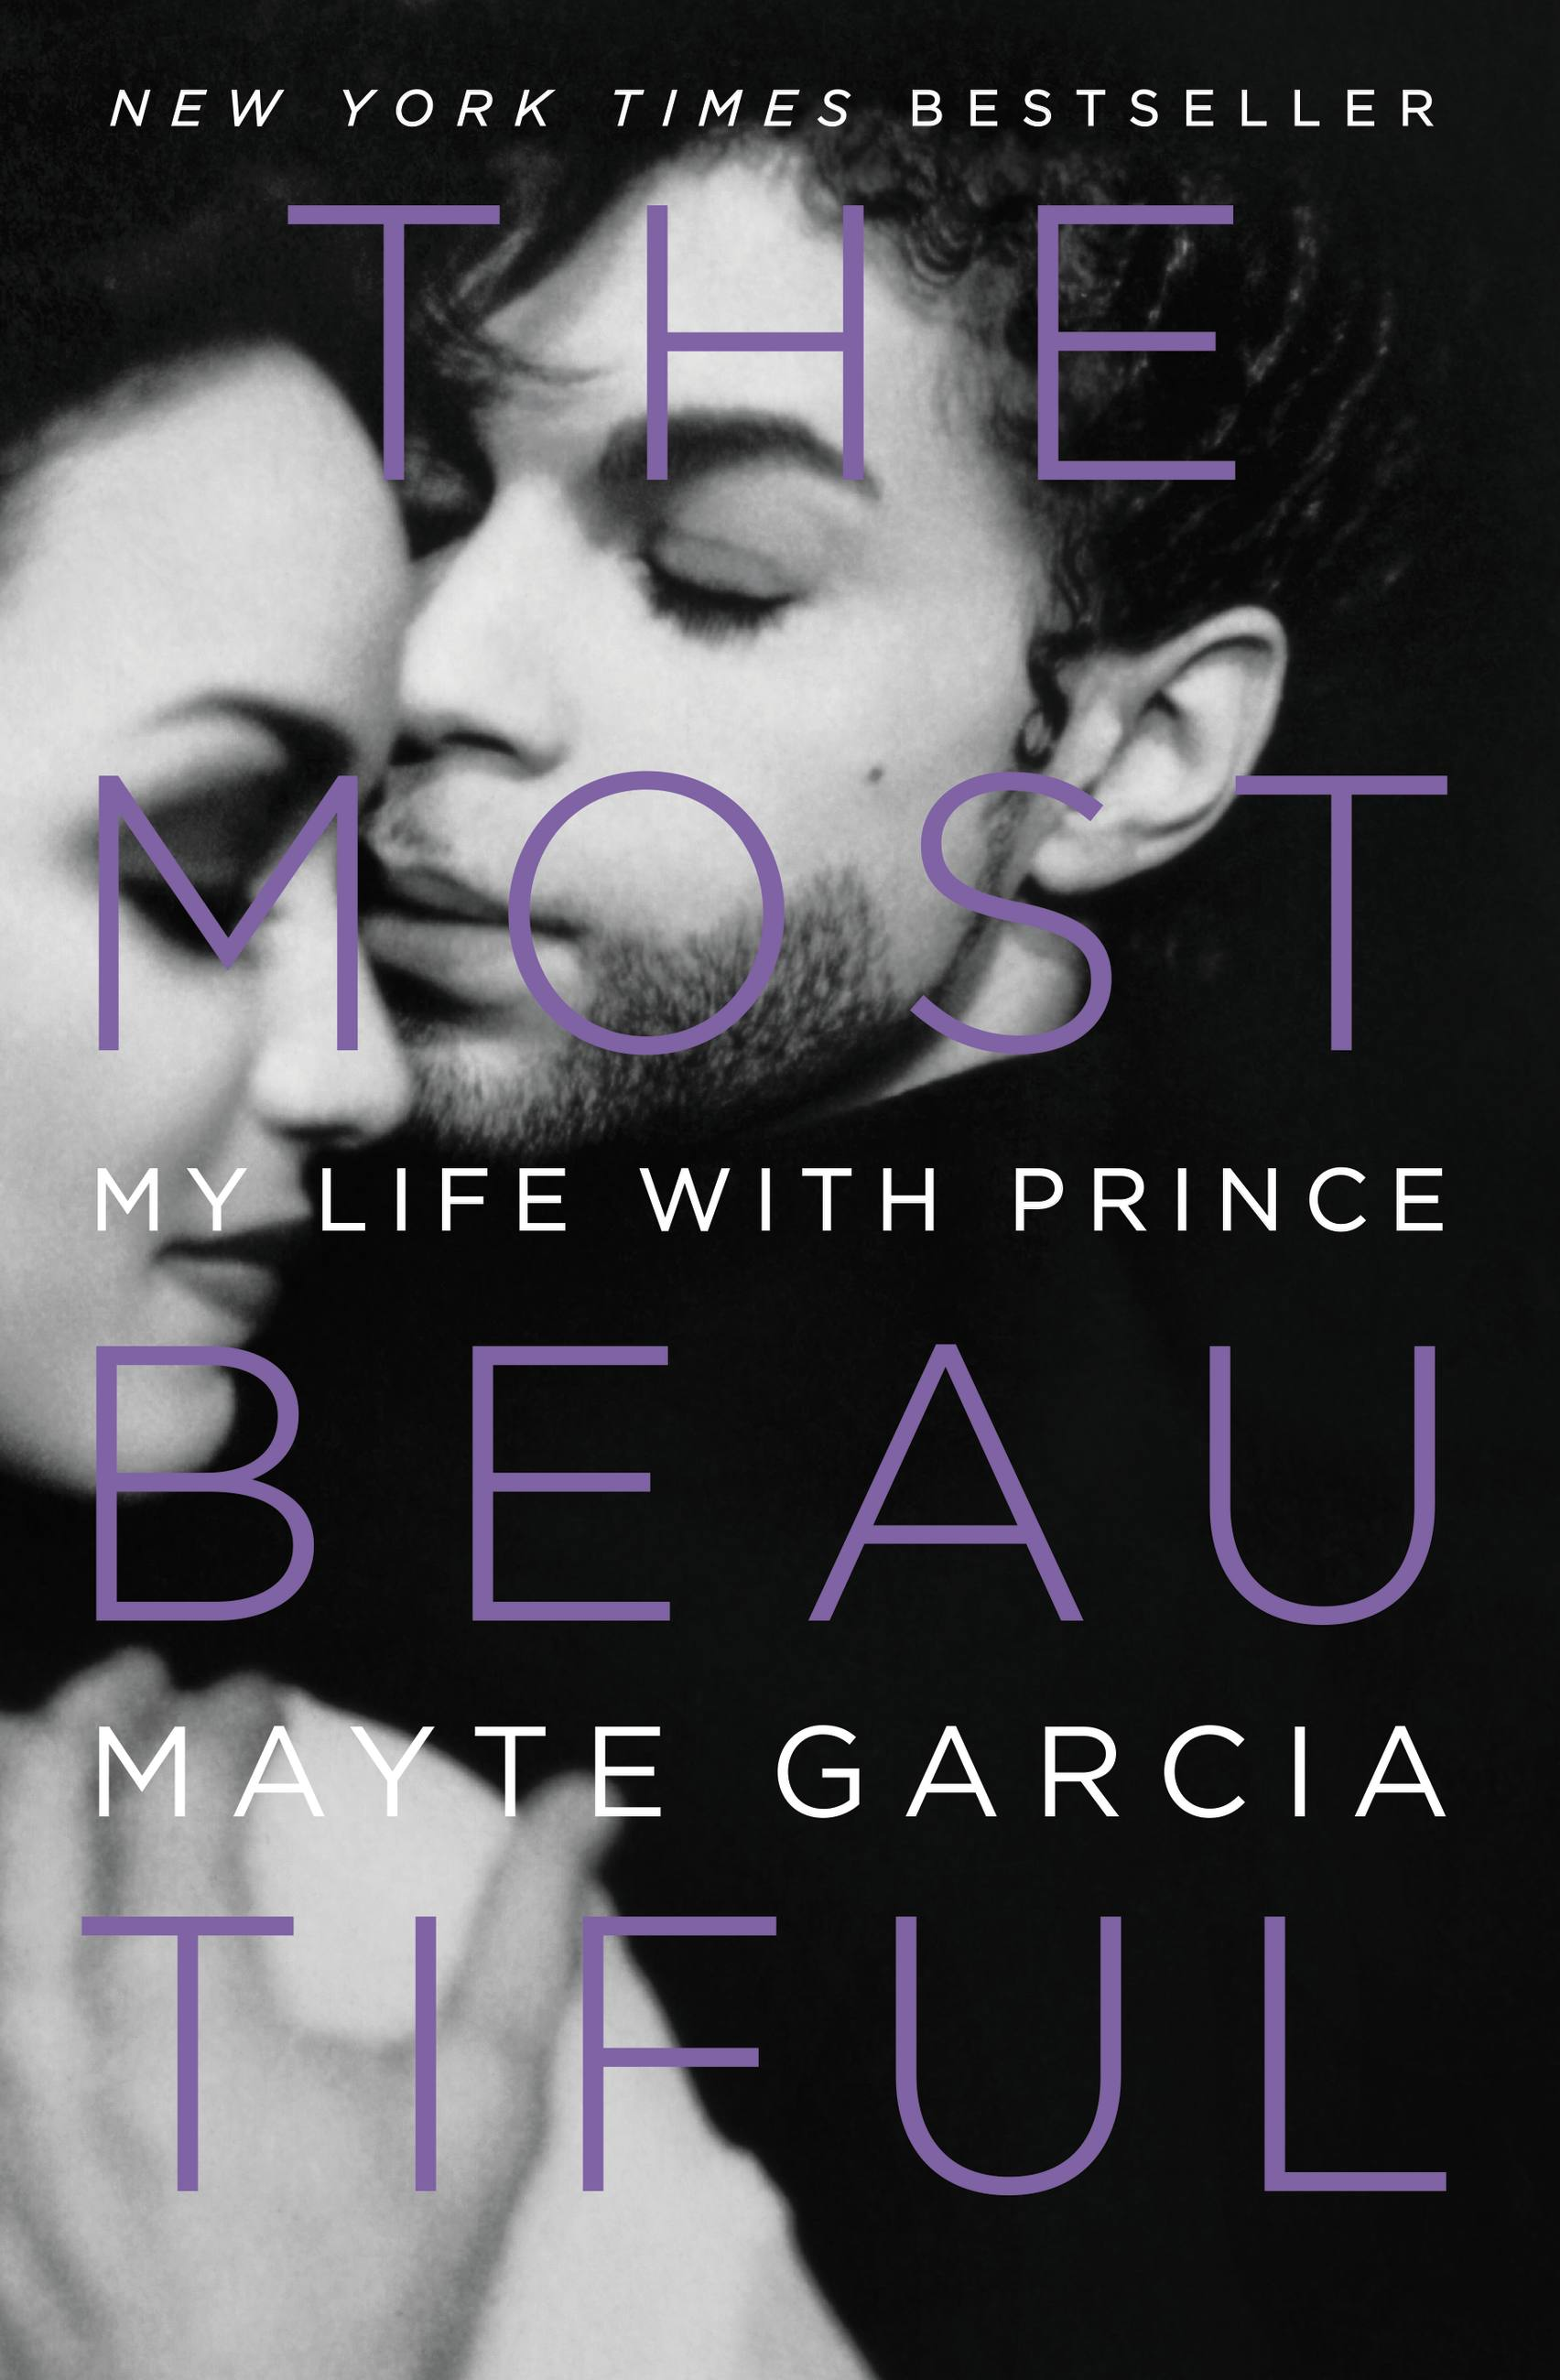 The Most Beautiful [EBOOK] My Life with Prince